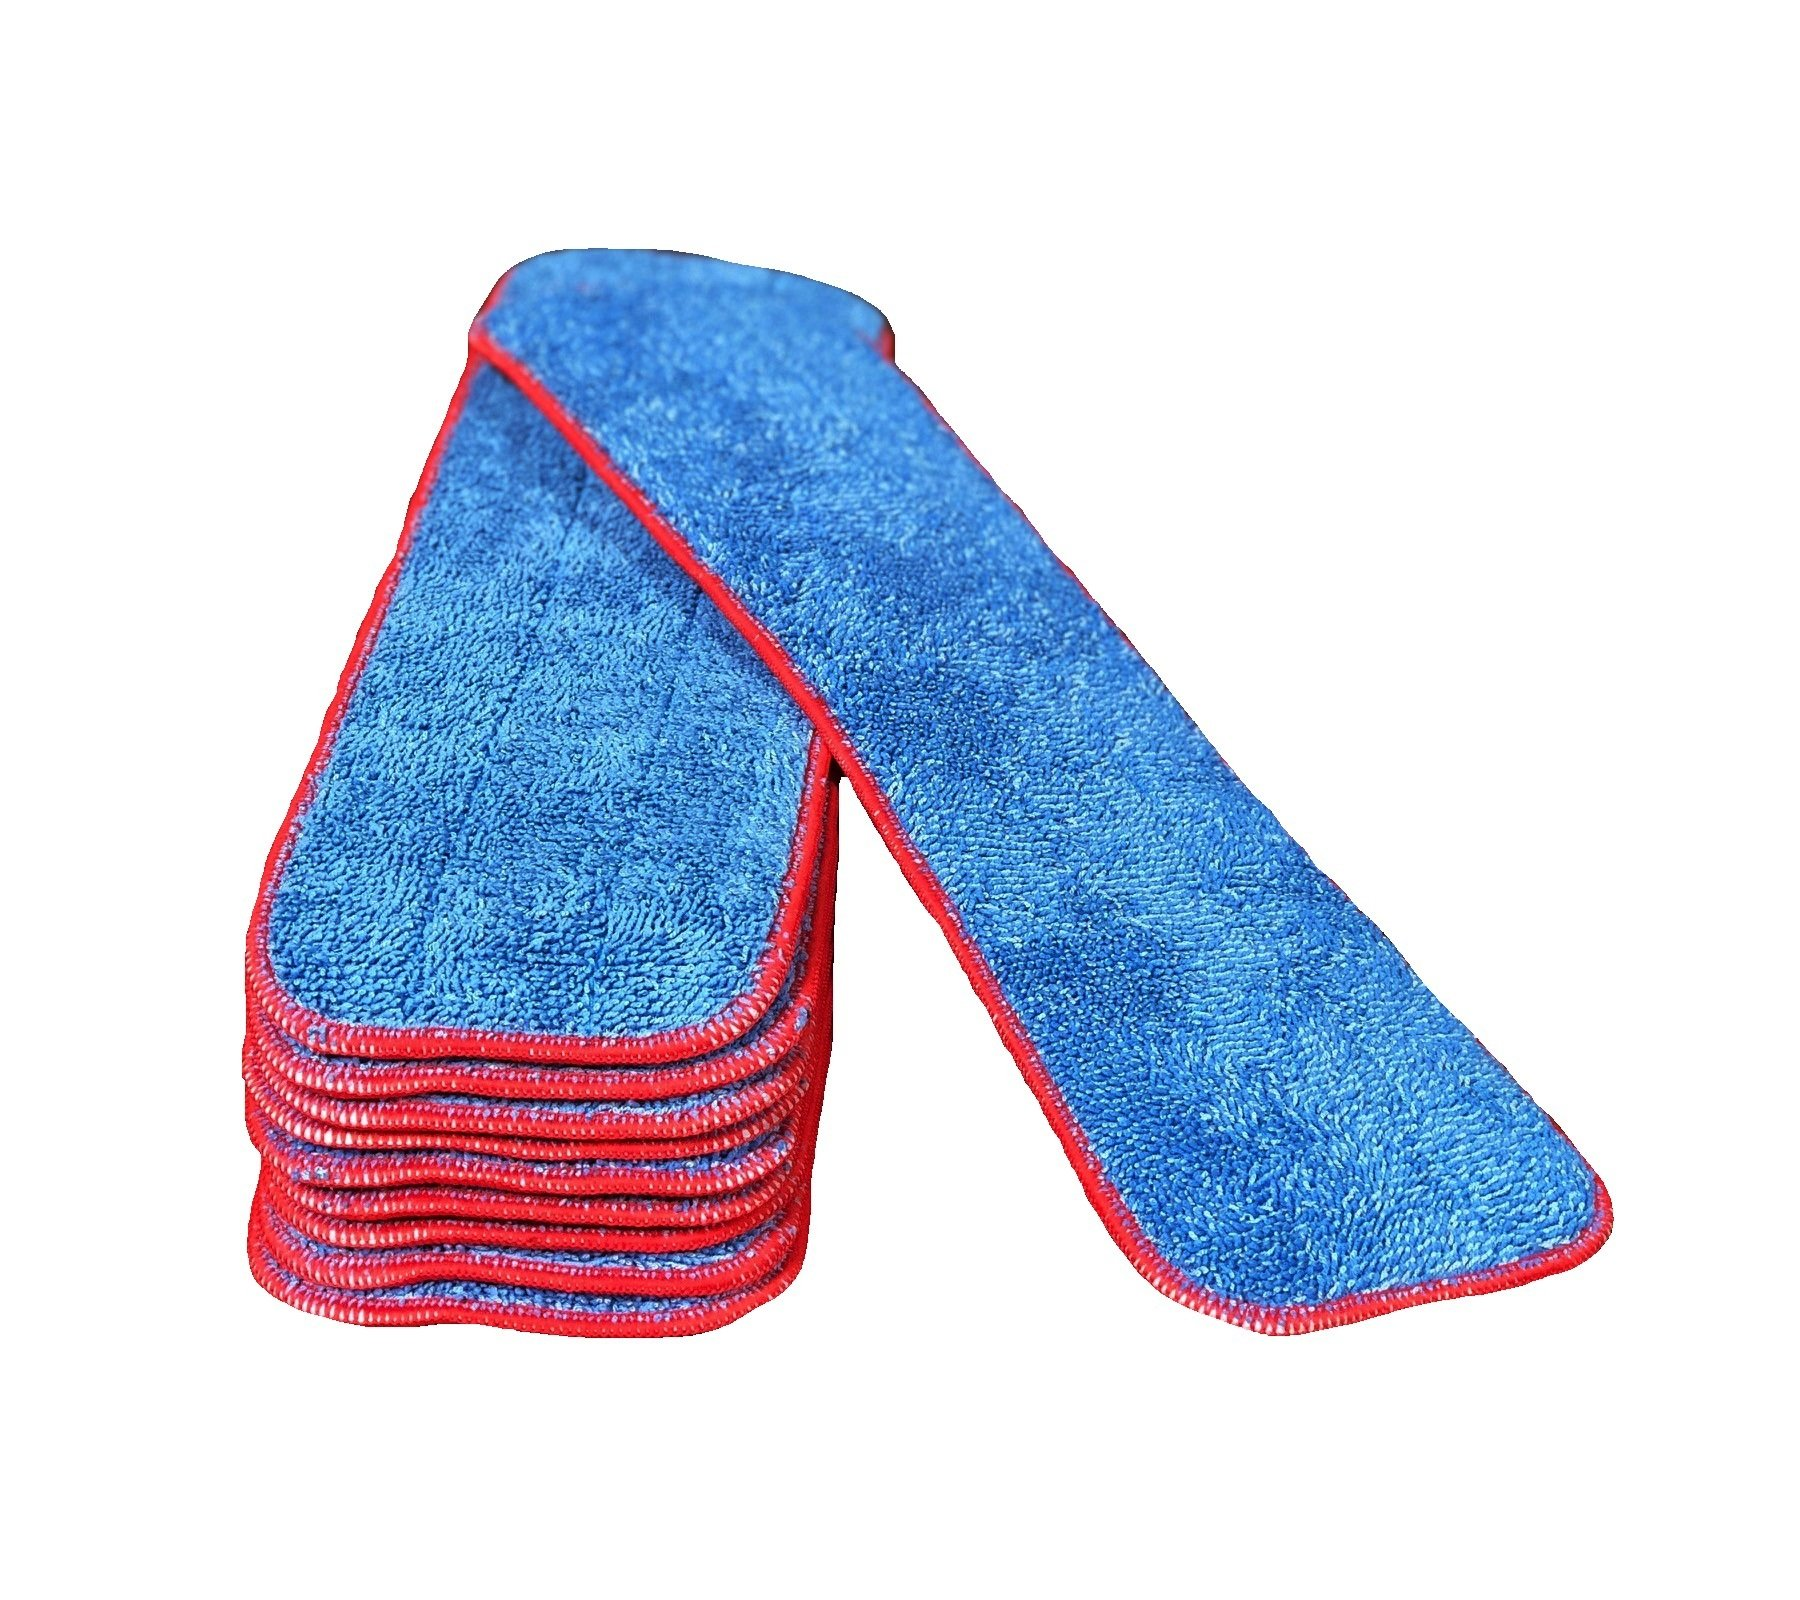 18'' Inch Microfiber Mop Pad Refills Fits 16 to 18 Inch Mop Frames Wet & Dry Use Commercial Microfiber (10 Pack)